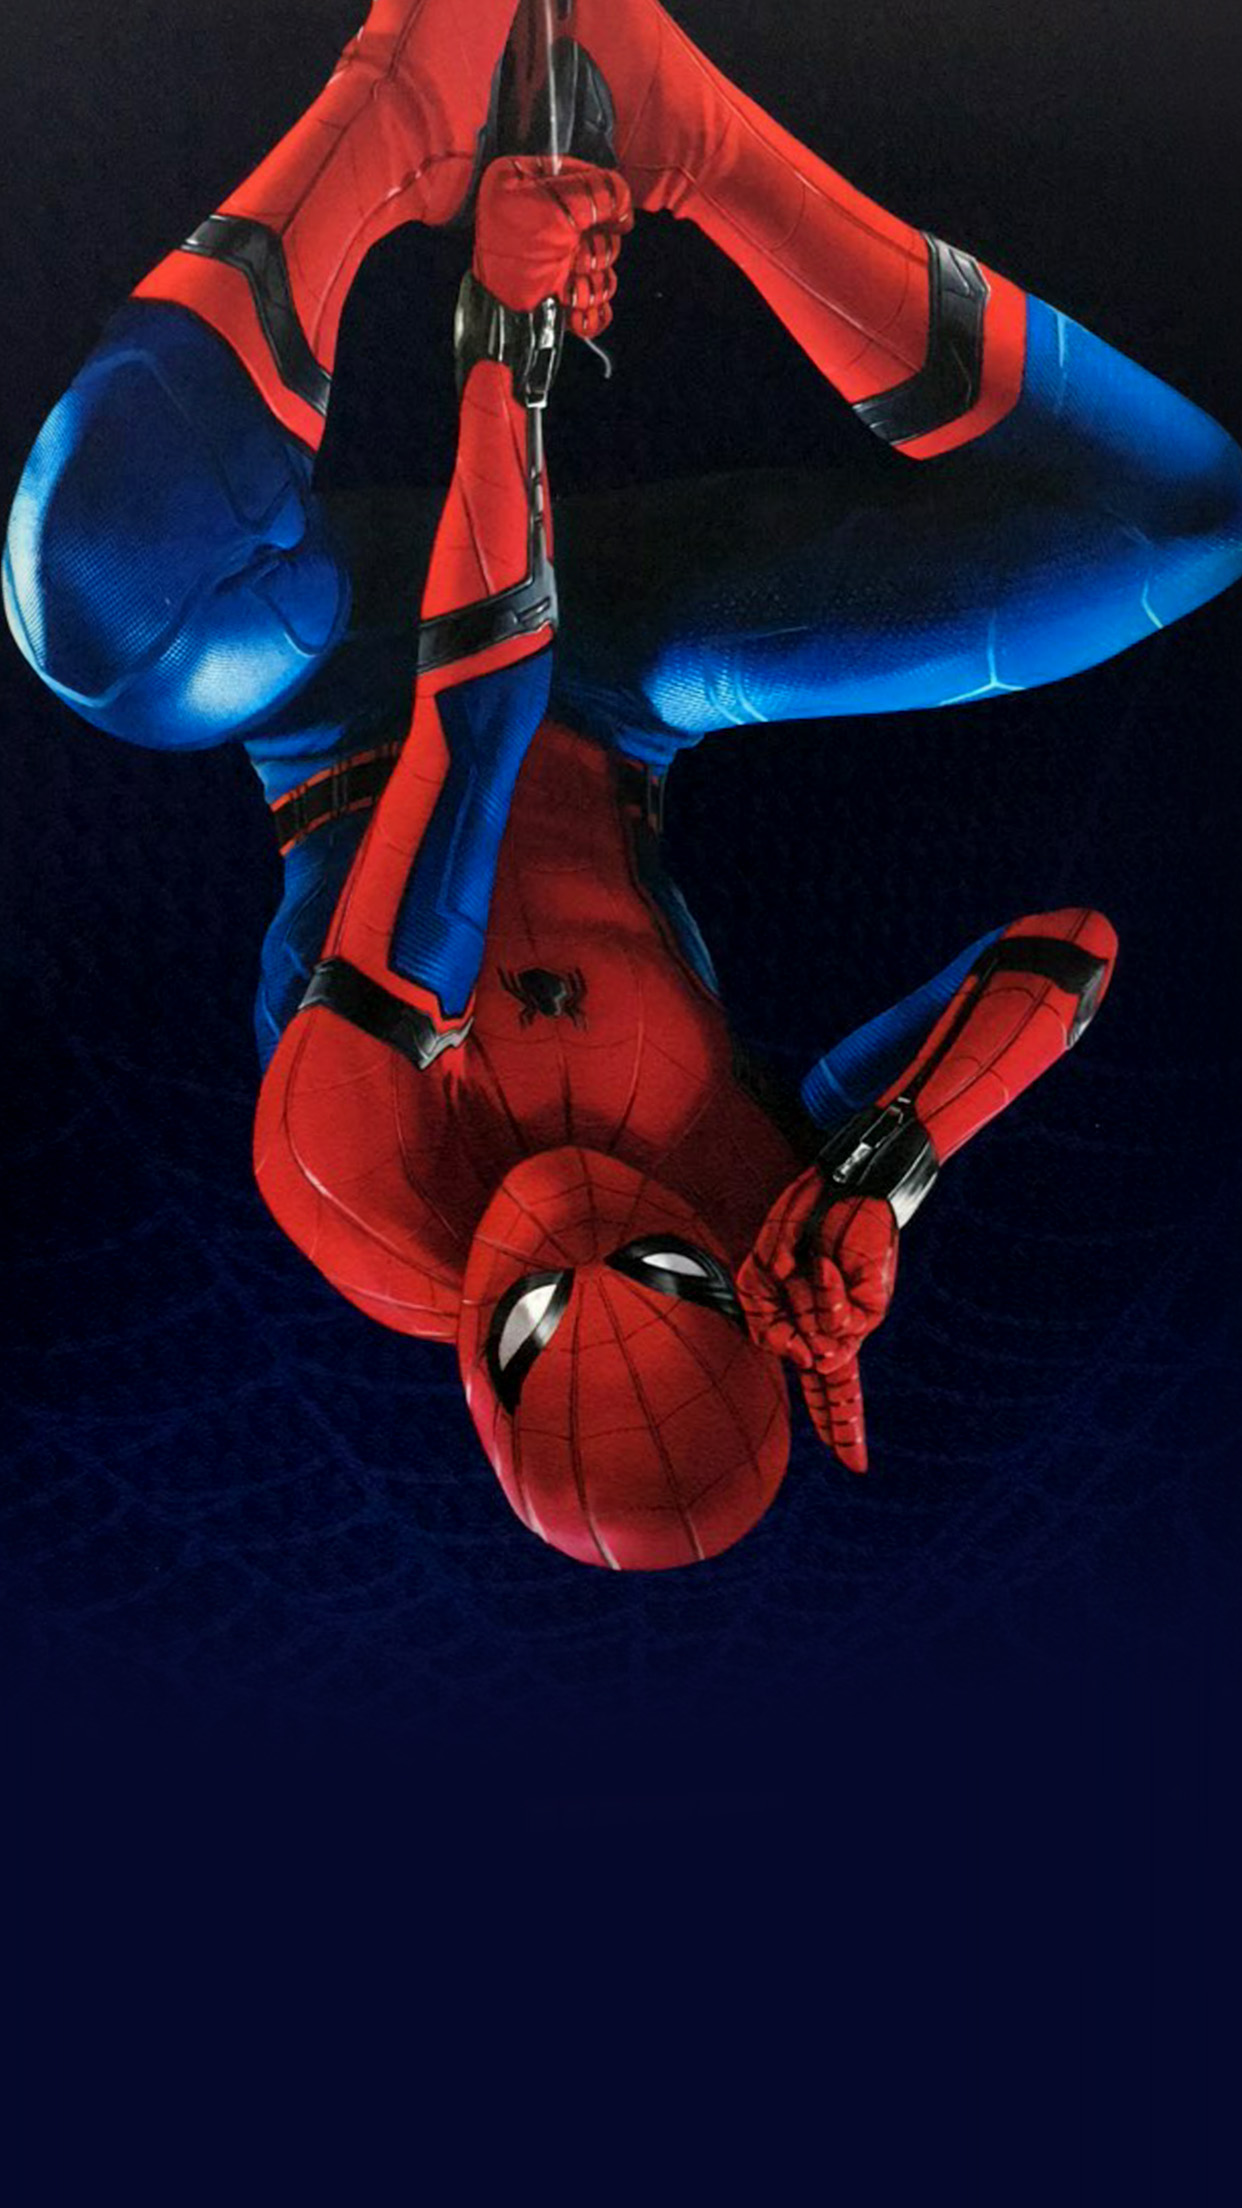 az61-spiderman-homecoming-hero-film-illustration-art-wallpaper